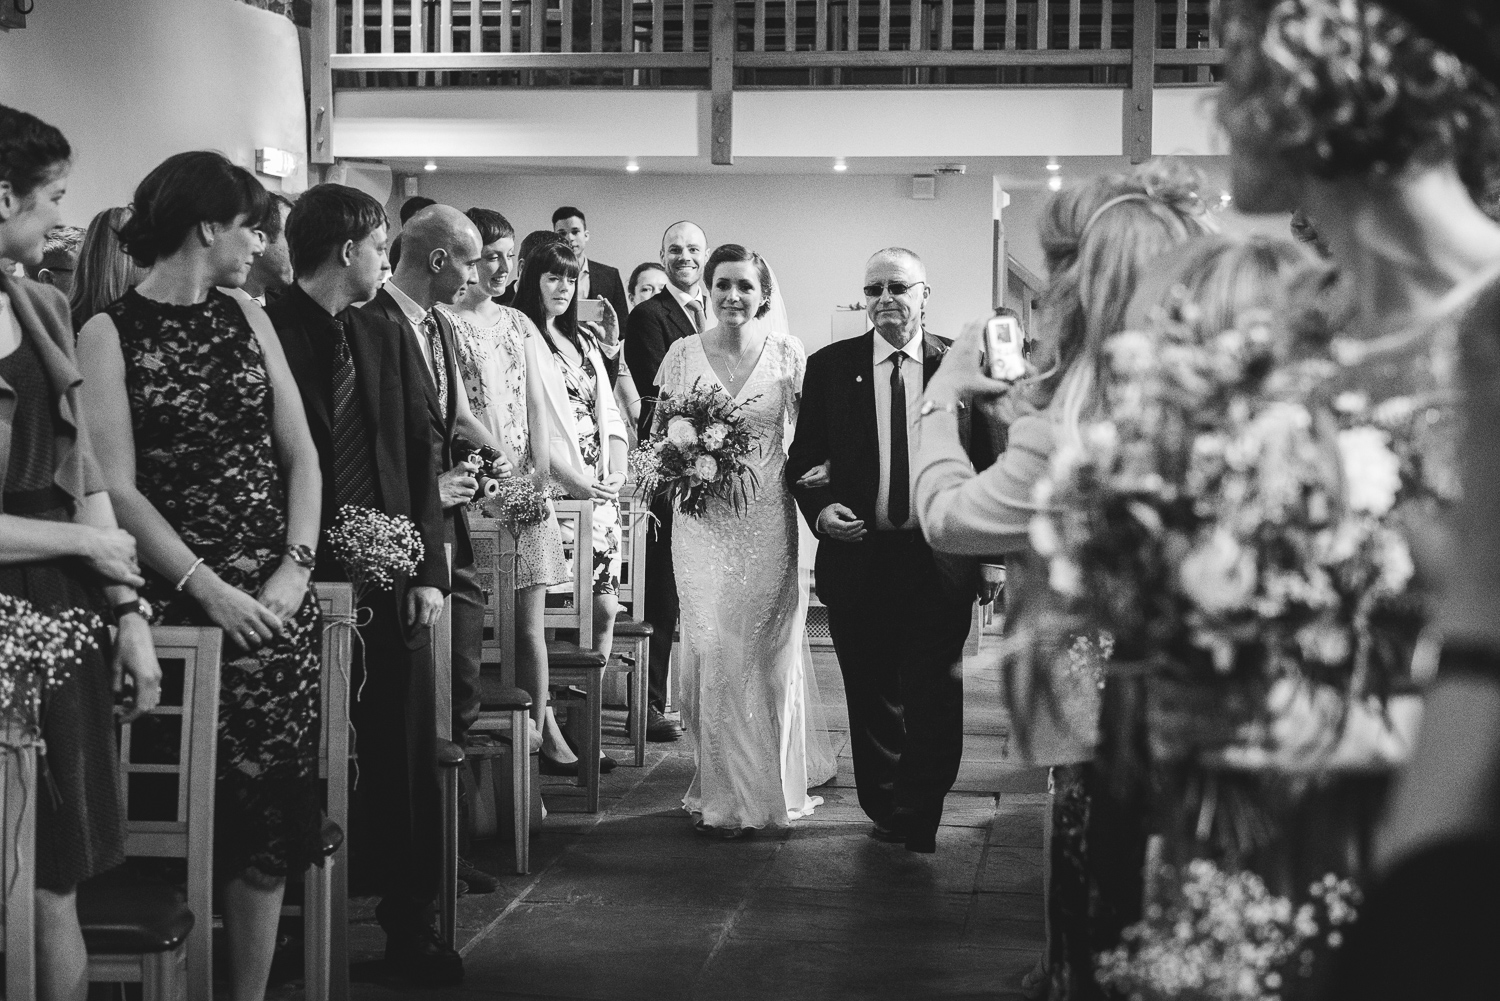 The Ashes, Staffordshire - Emma Hare Photography-11.jpg